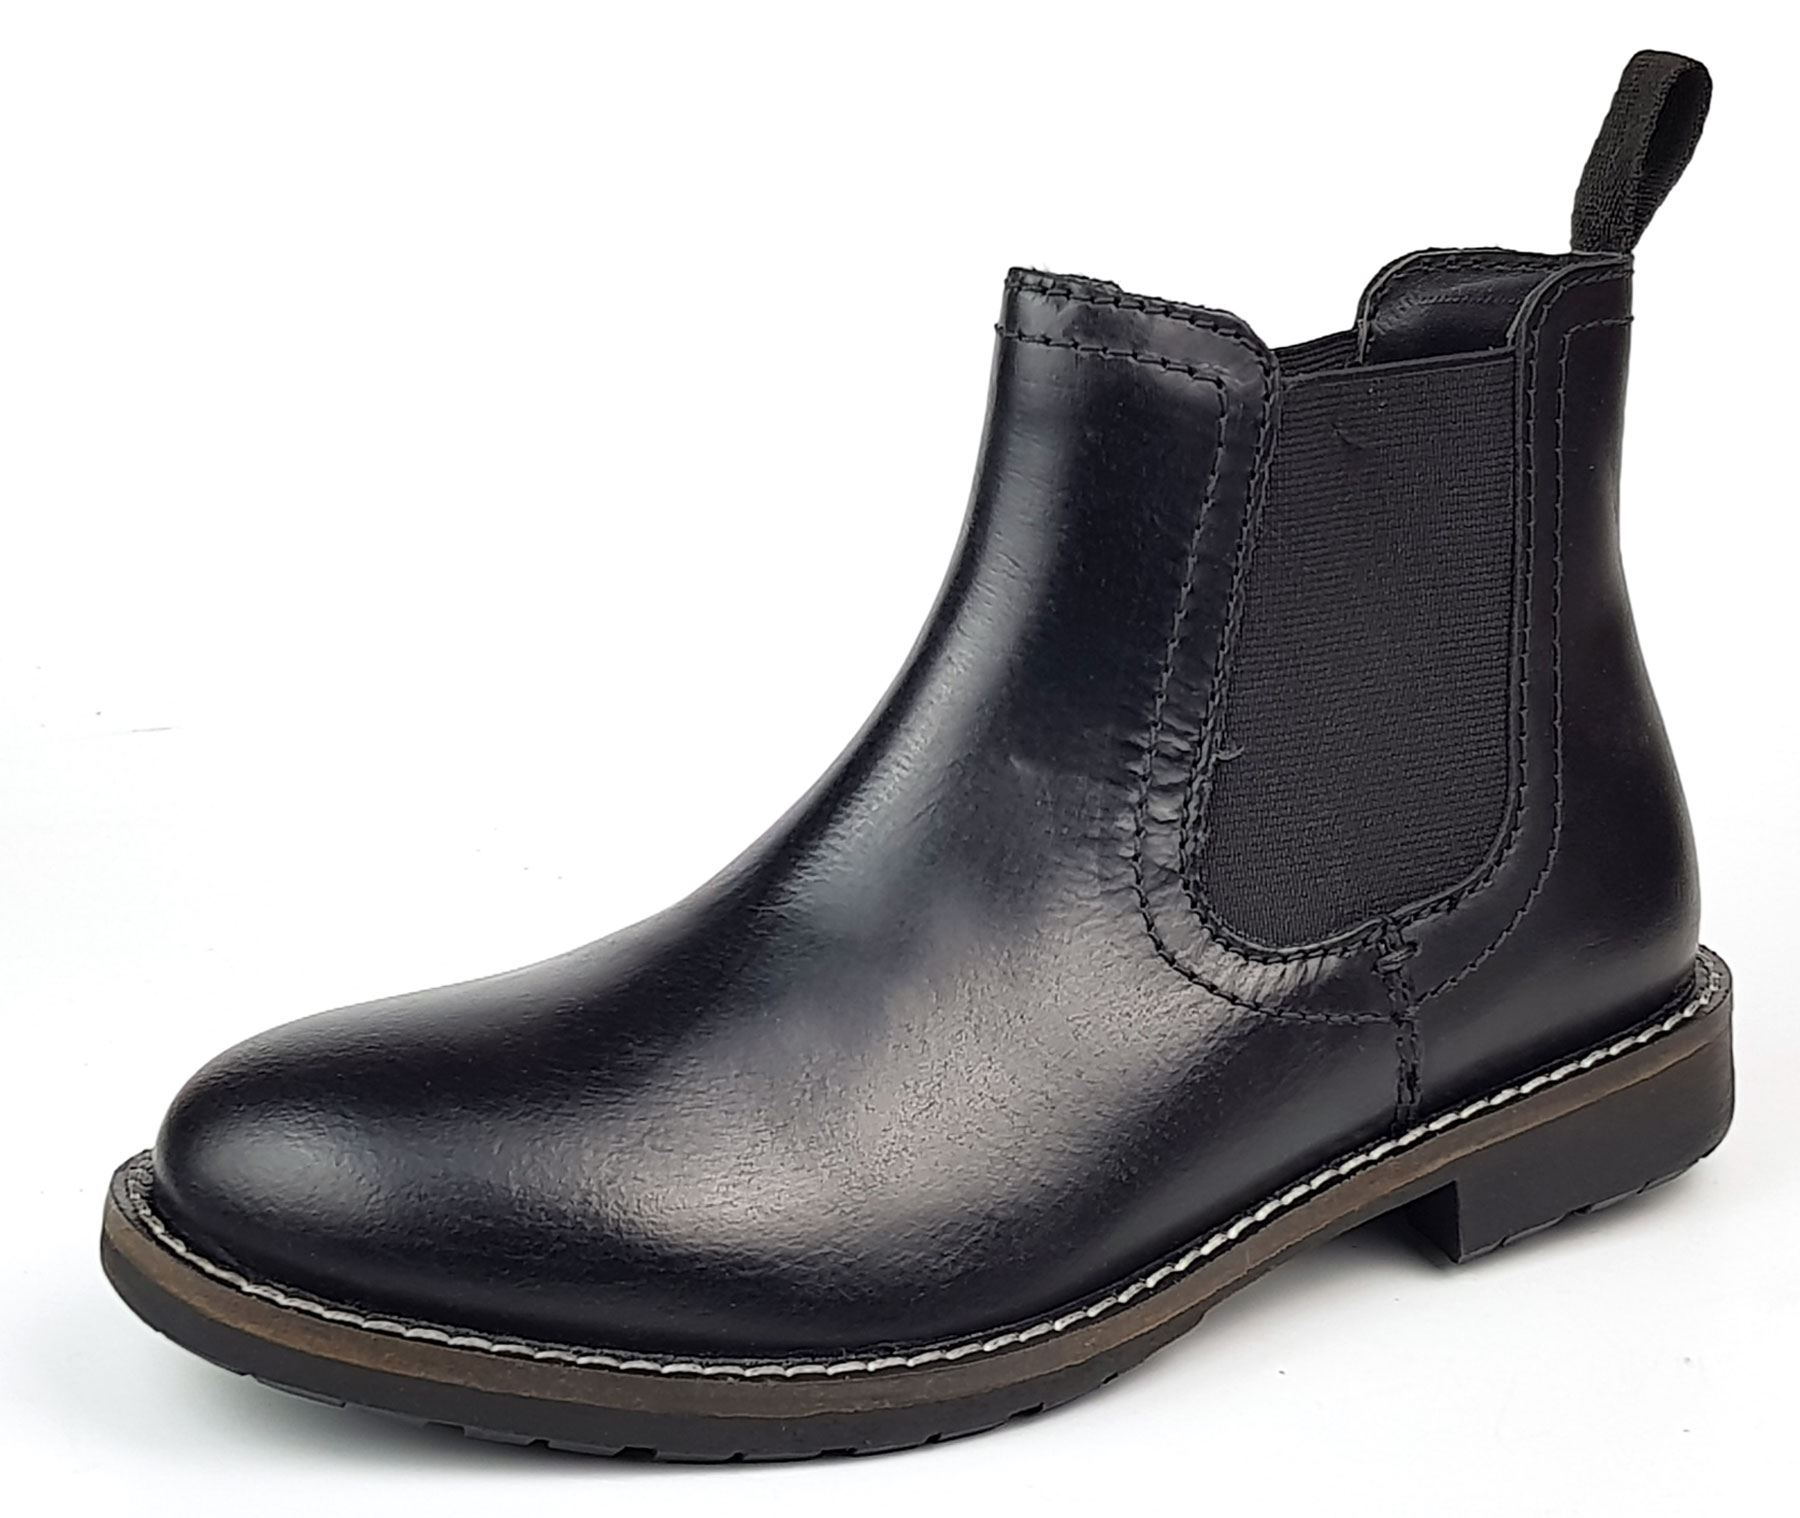 Oaktrak Appleby Boys Black Leather Brogue Pull On Chelsea Boots